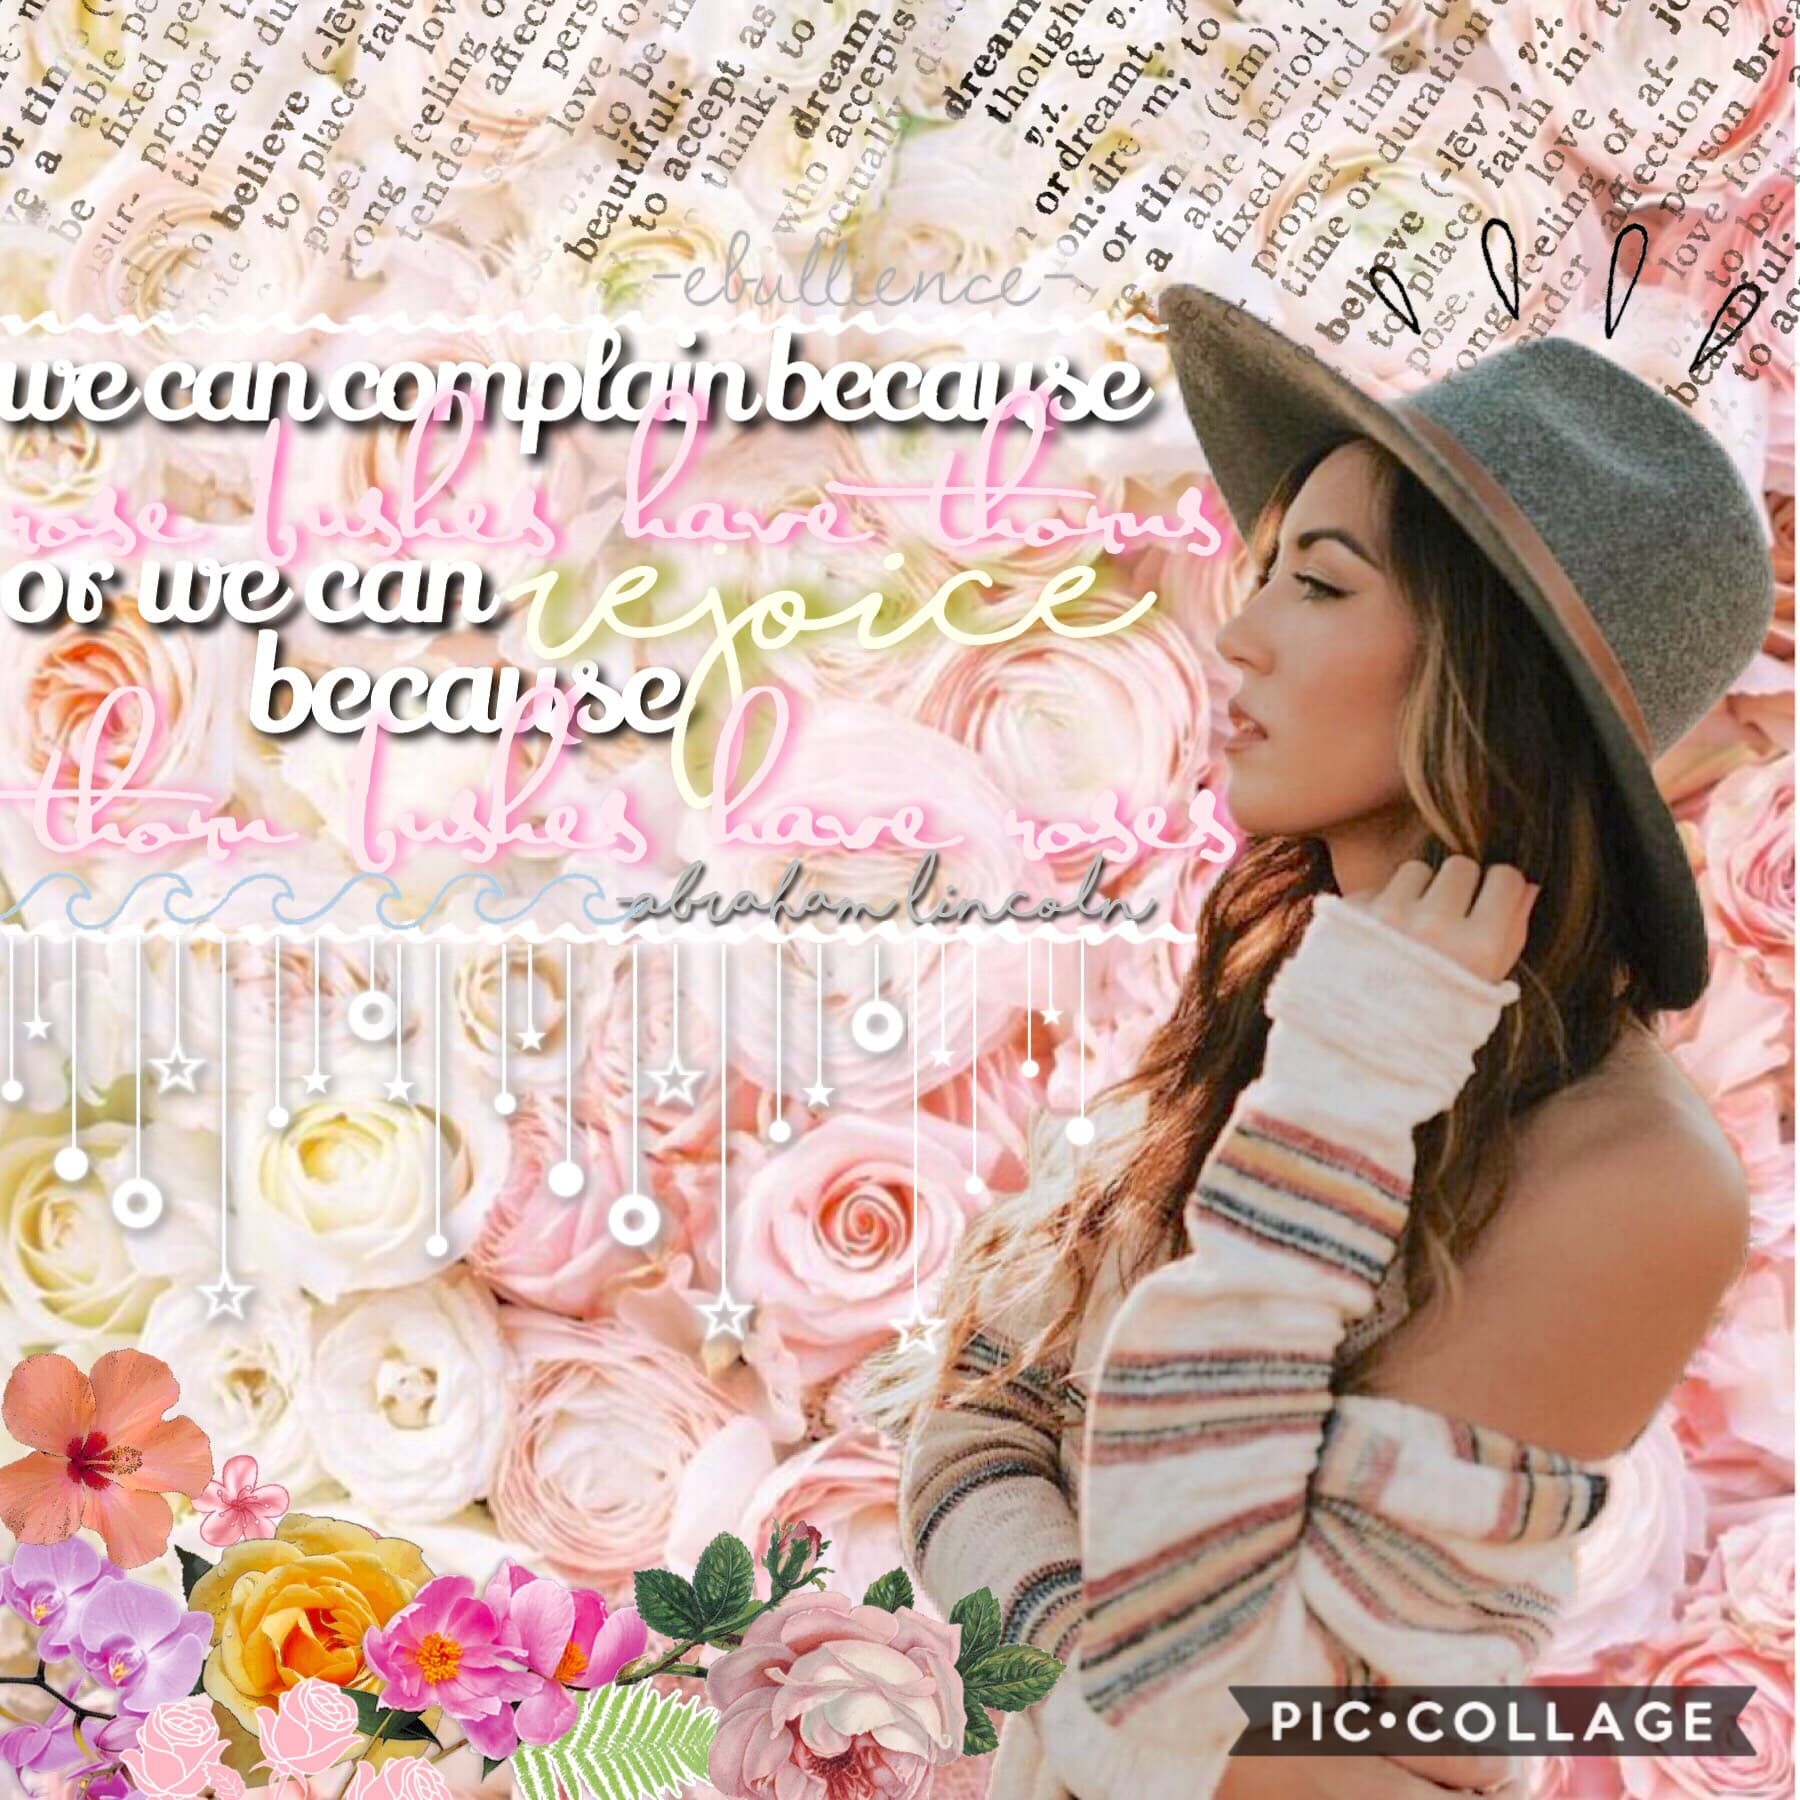 ✨tap✨ Hello lovelies! Hope you had an awesome day! In this collage I used a lot of the floral stickers from pic collage in the bottom left corner, and I love how it turned out! Let me know what you think! QOTD:favorite PC font? AOTD:satisfaction 9/2/2018